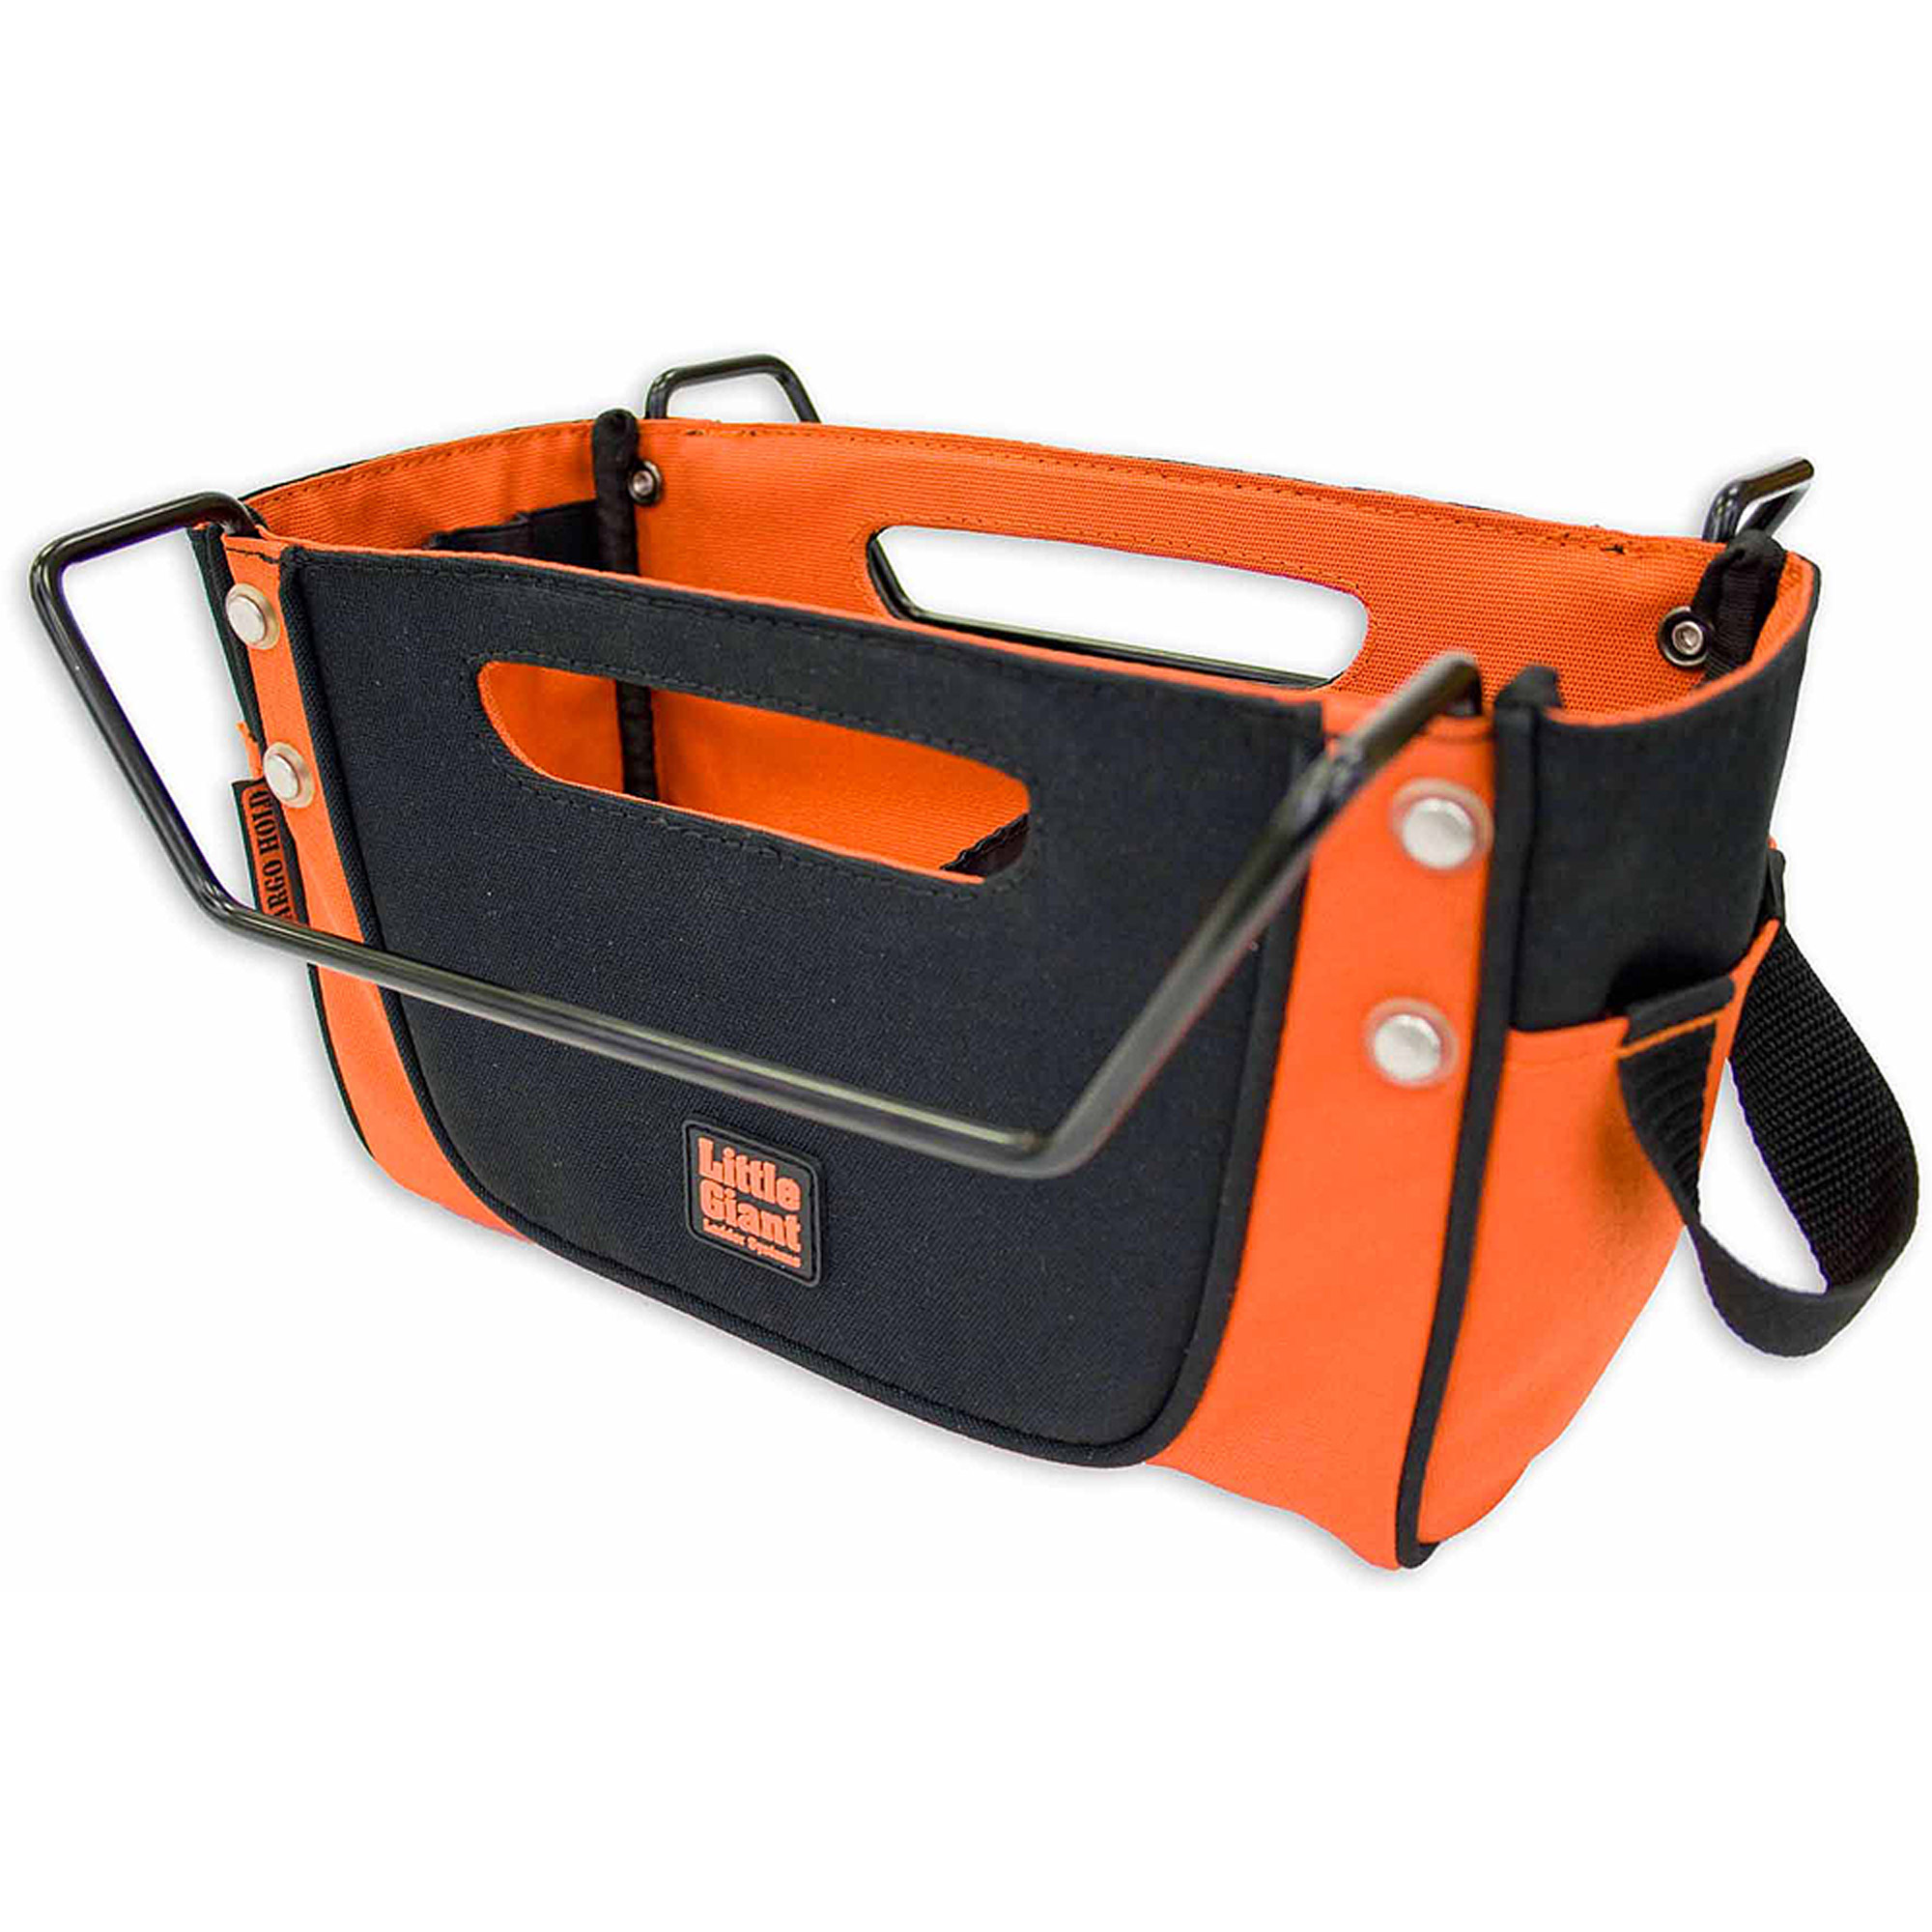 Little Giant Cargo Hold, tool bag, ladder accessory